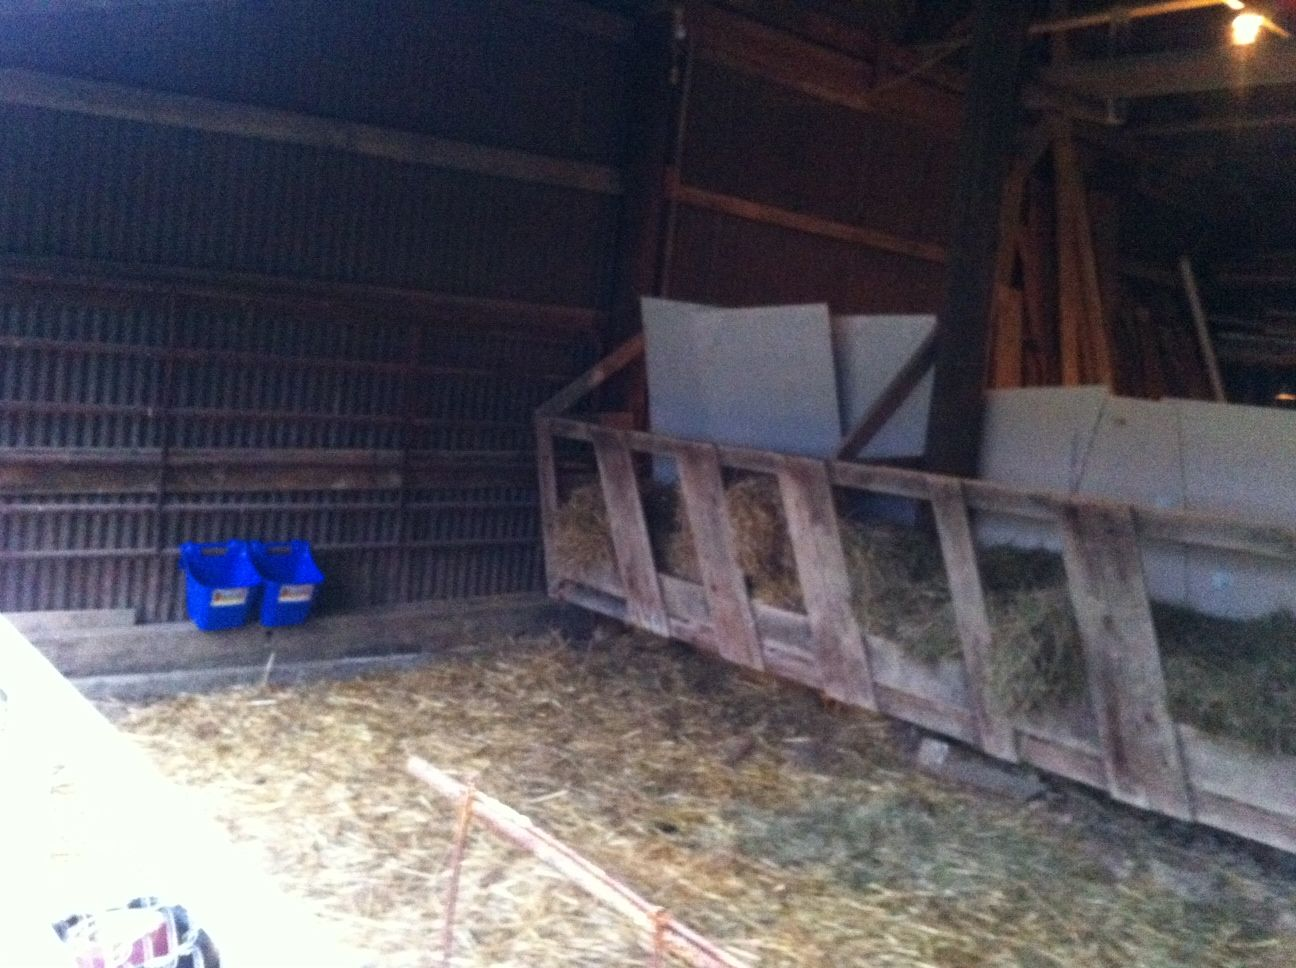 Inside The Temporary Goat Barn Blue Hook Over Grain And Mineral Feeders Straw Hay Feeder Along Wall AKA Escape Route Hence Concrete Board